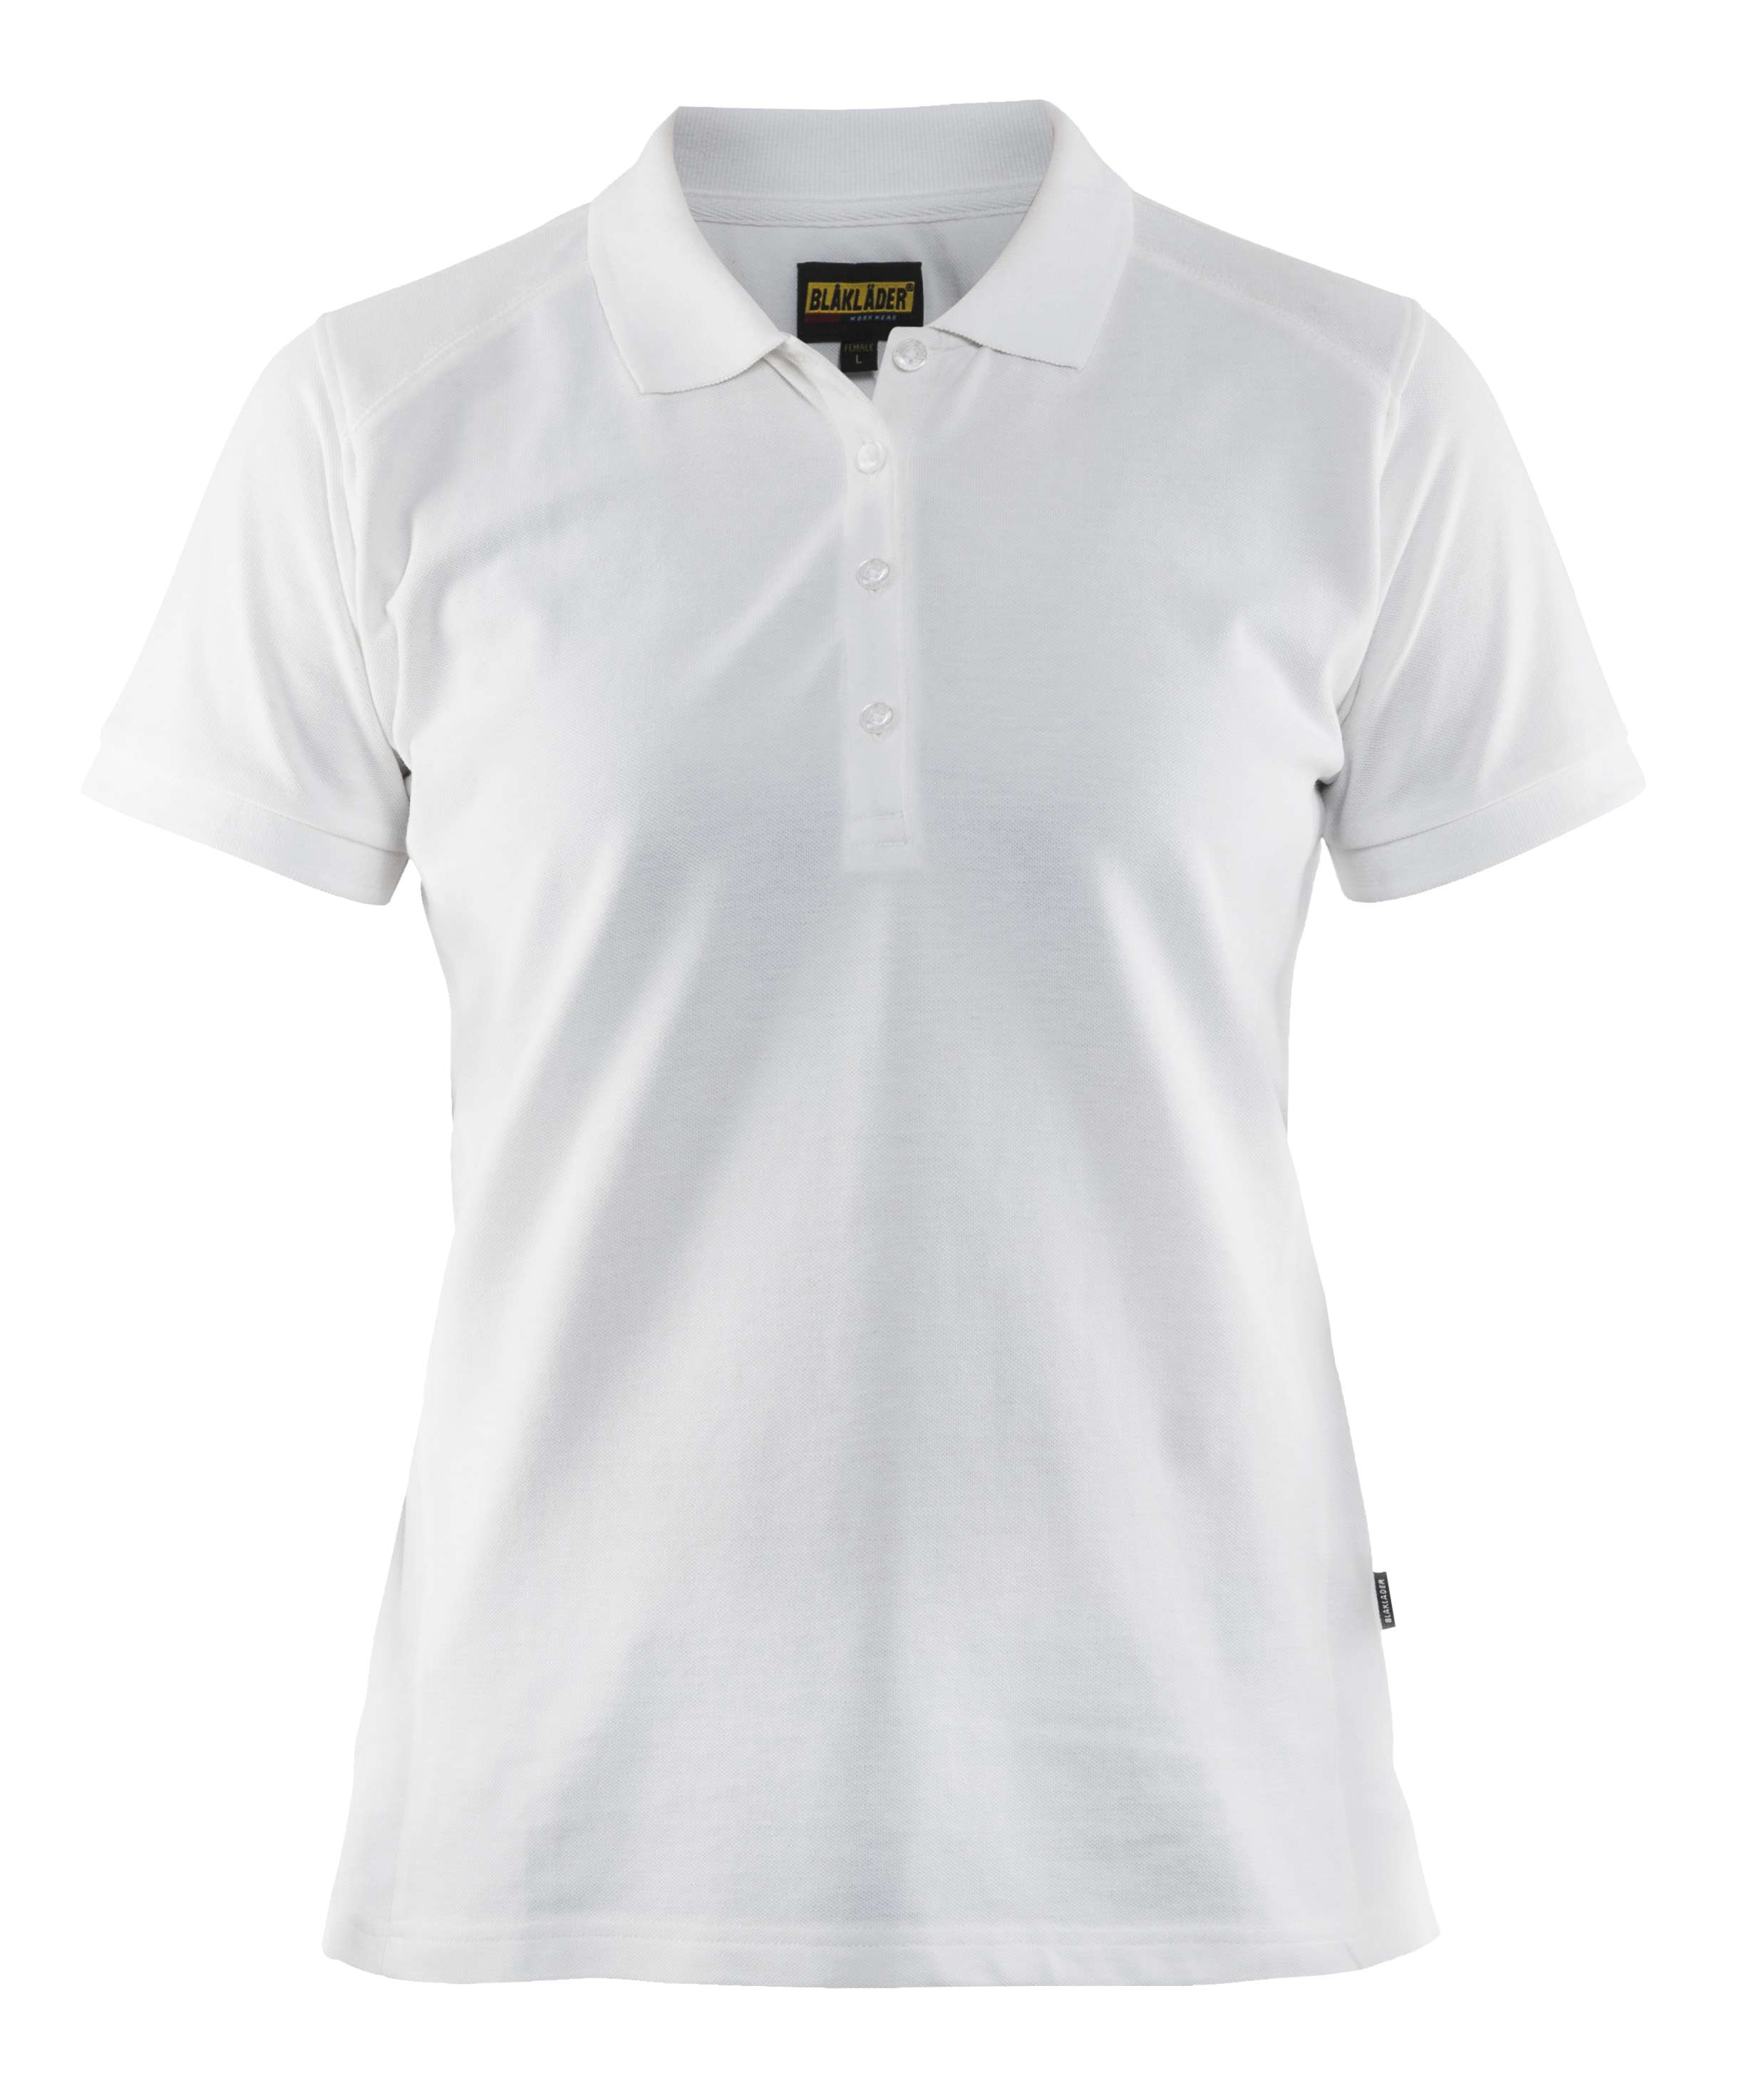 Blaklader Dames polo shirts 33901050 wit(1000)